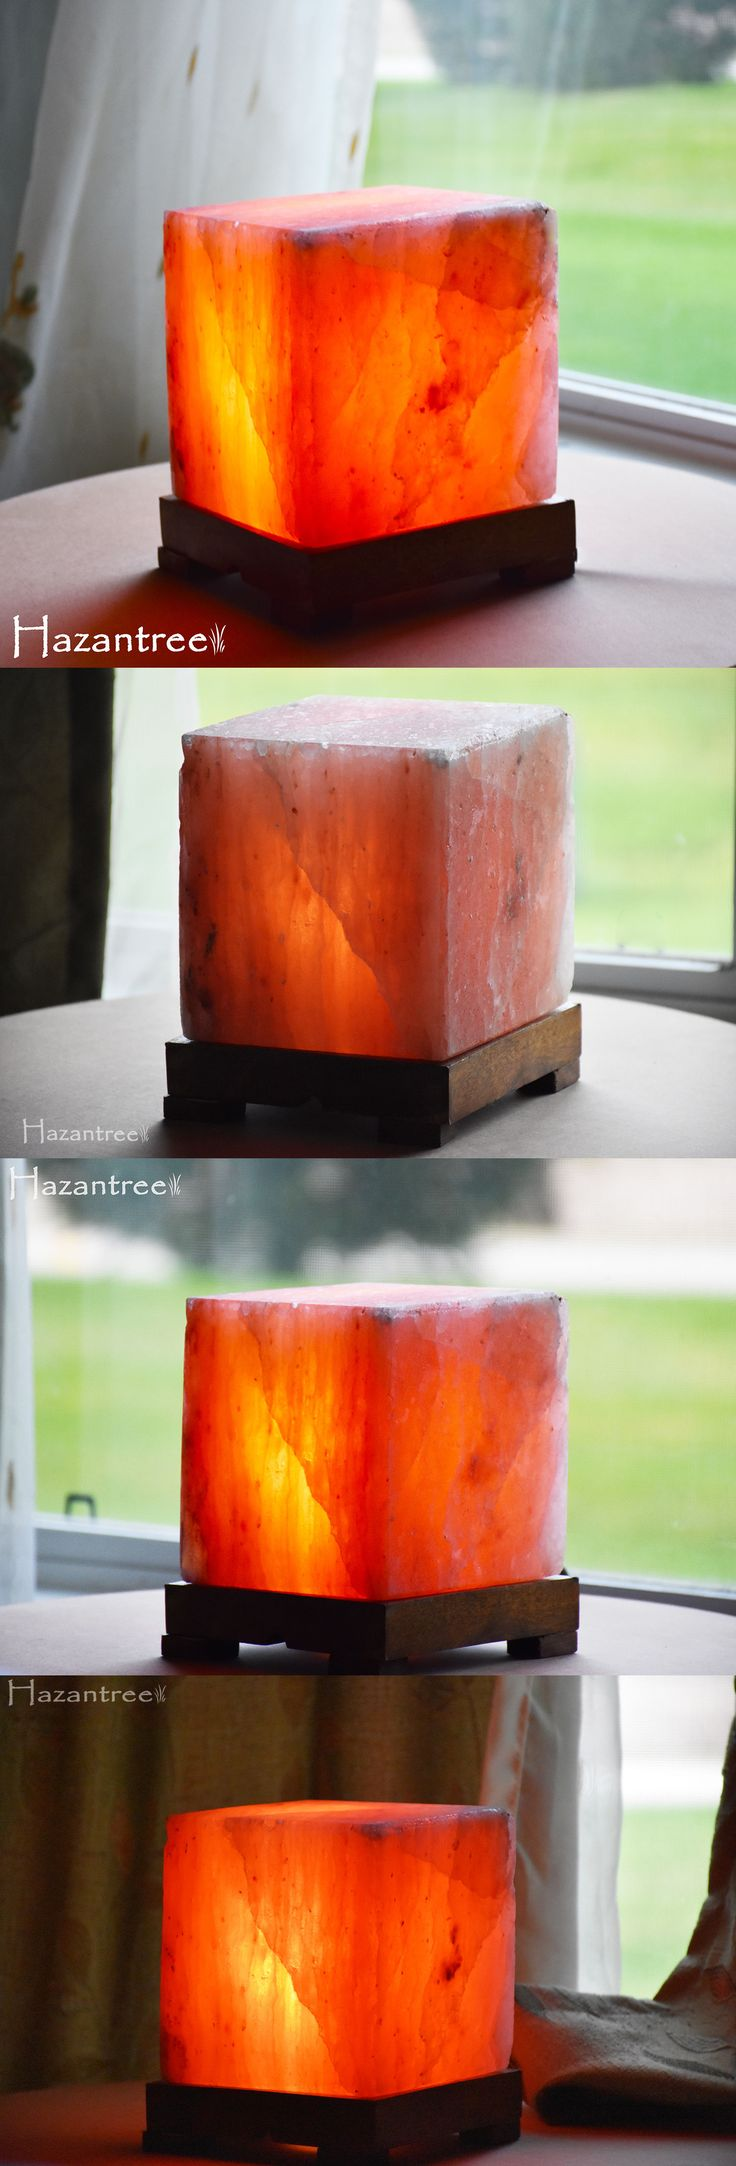 Light Therapy Devices: Hazantree Himalayan Natural Air Purifier Rock Crystal Zencube Salt Night Lamp -> BUY IT NOW ONLY: $47.99 on eBay!